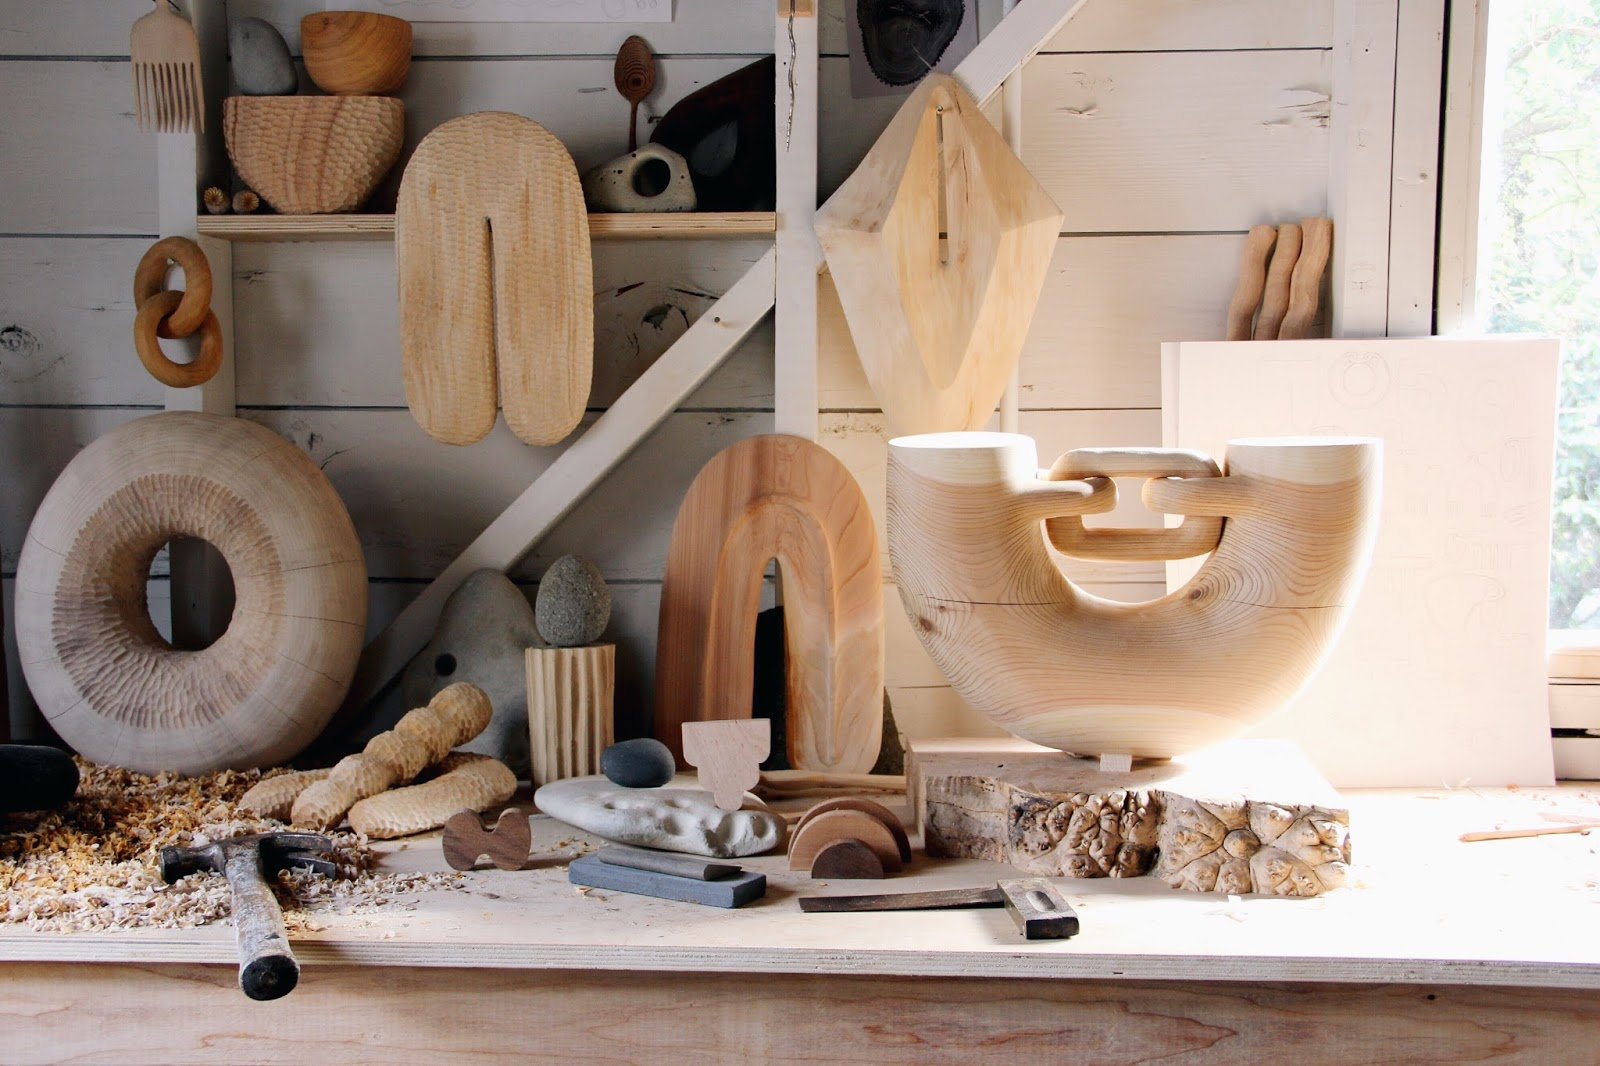 Eclectic Trends   Sublime wood sculptures and everyday objects by Ariele Alasko